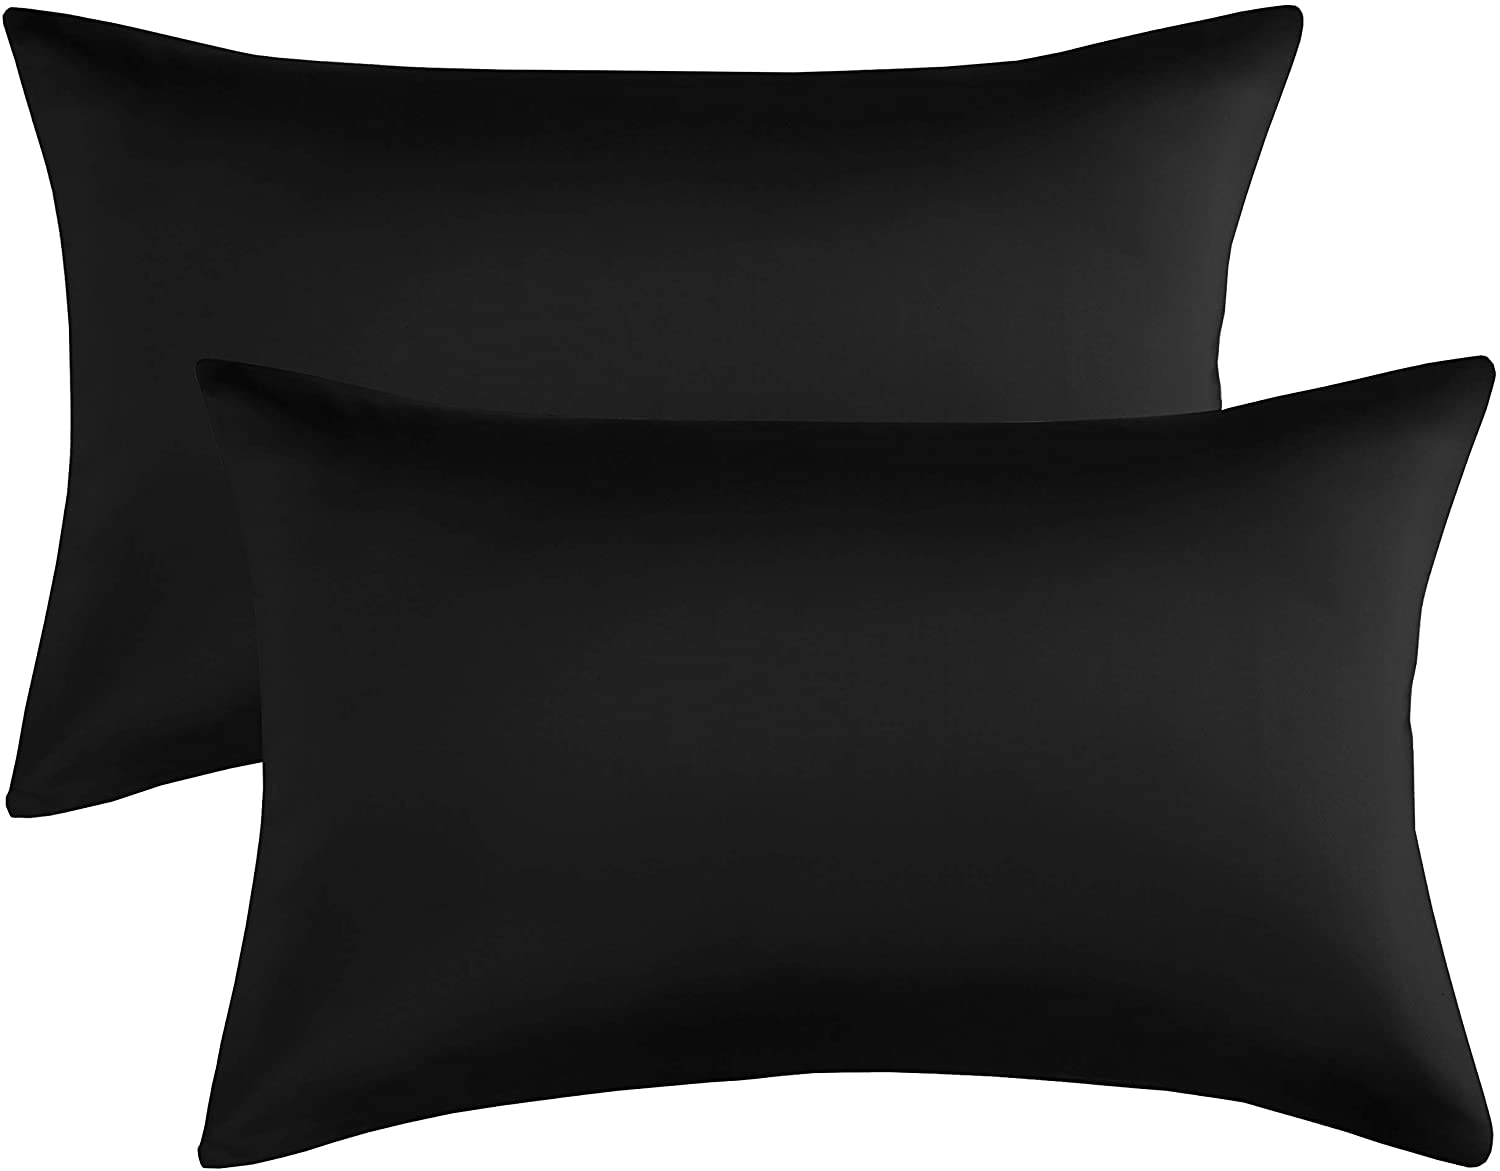 Qeeruim Home Satin Pillowcase for Hair and Skin, 2-Pack - Queen Size (20x30 inches) Silk Pillow Cases - Satin Pillow Covers with Envelope Closure, Black